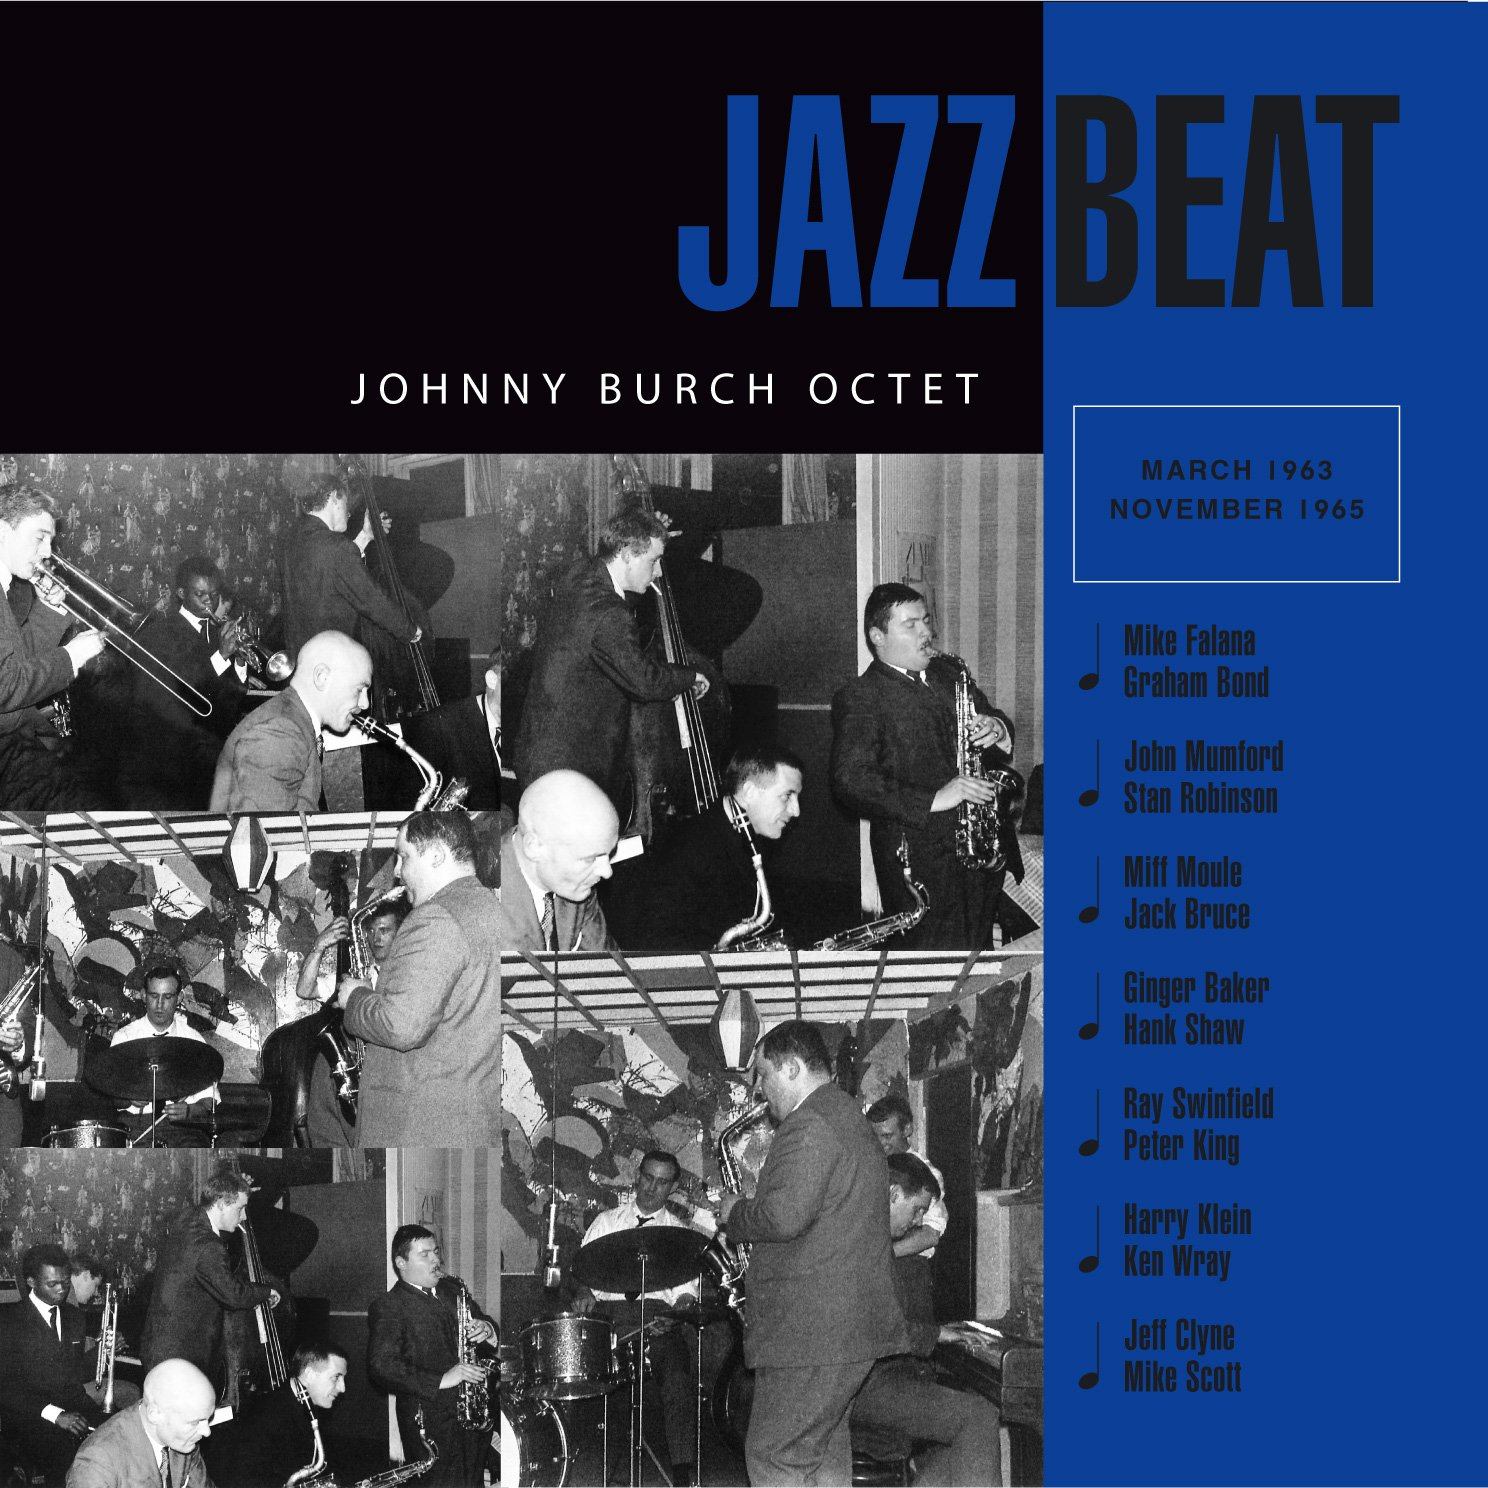 JAZZBEAT - JOHNNY BURCH OCTET CD